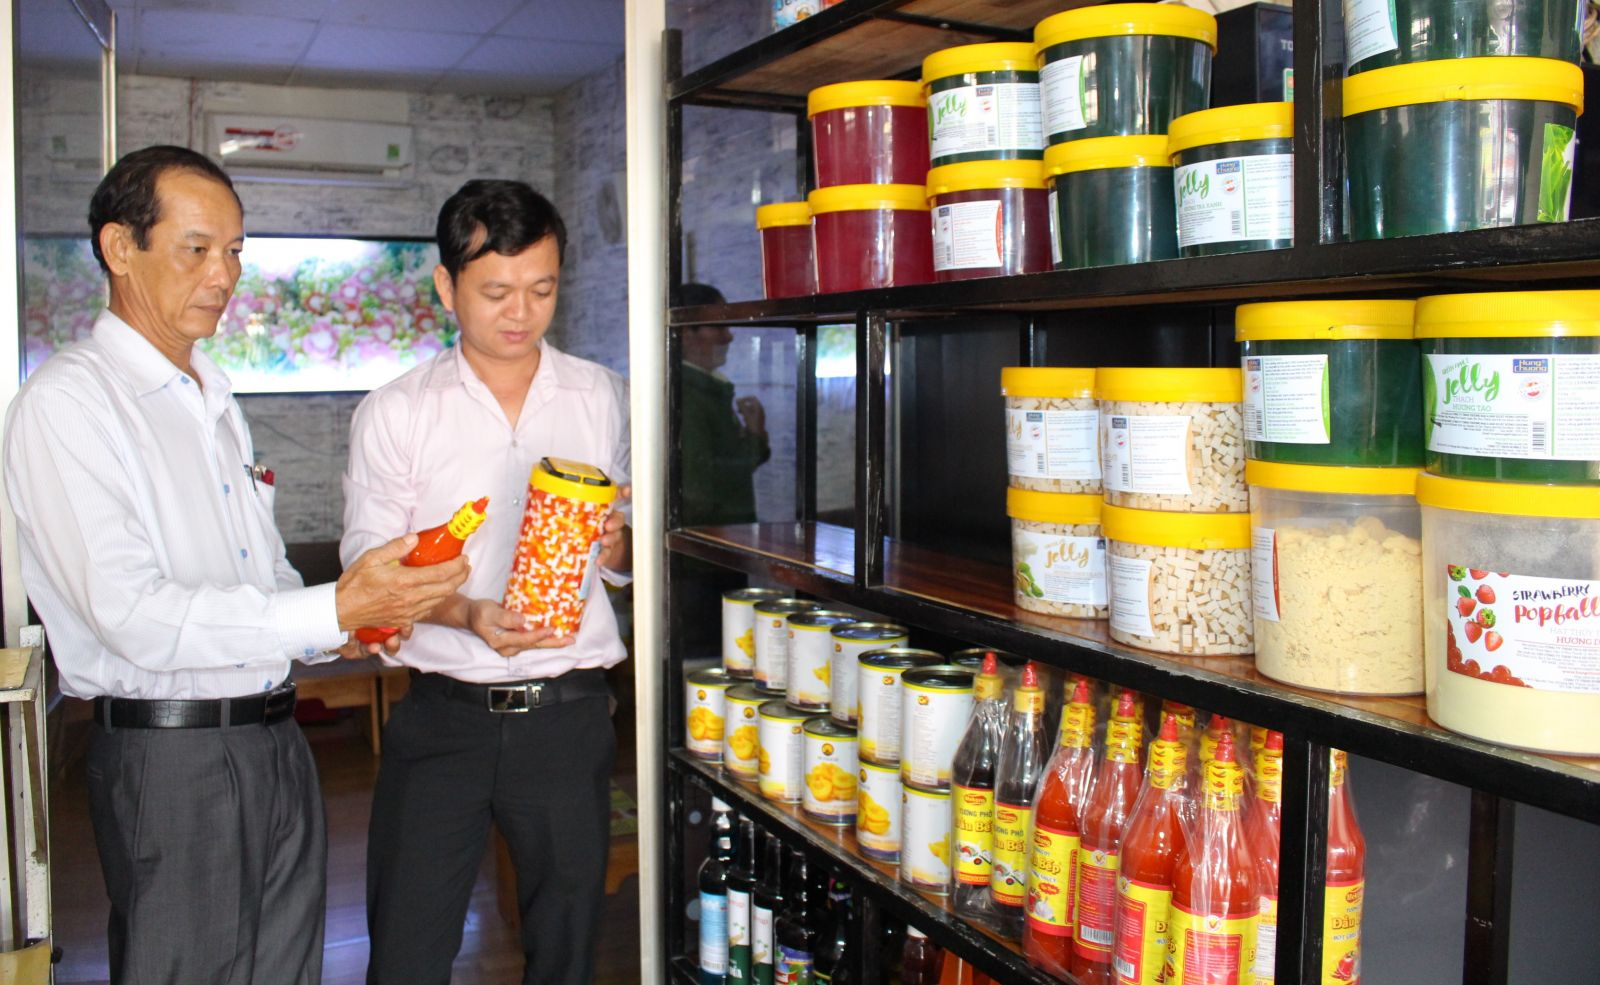 The delegation focused on checking product labels, origin, expiry date and food preservation